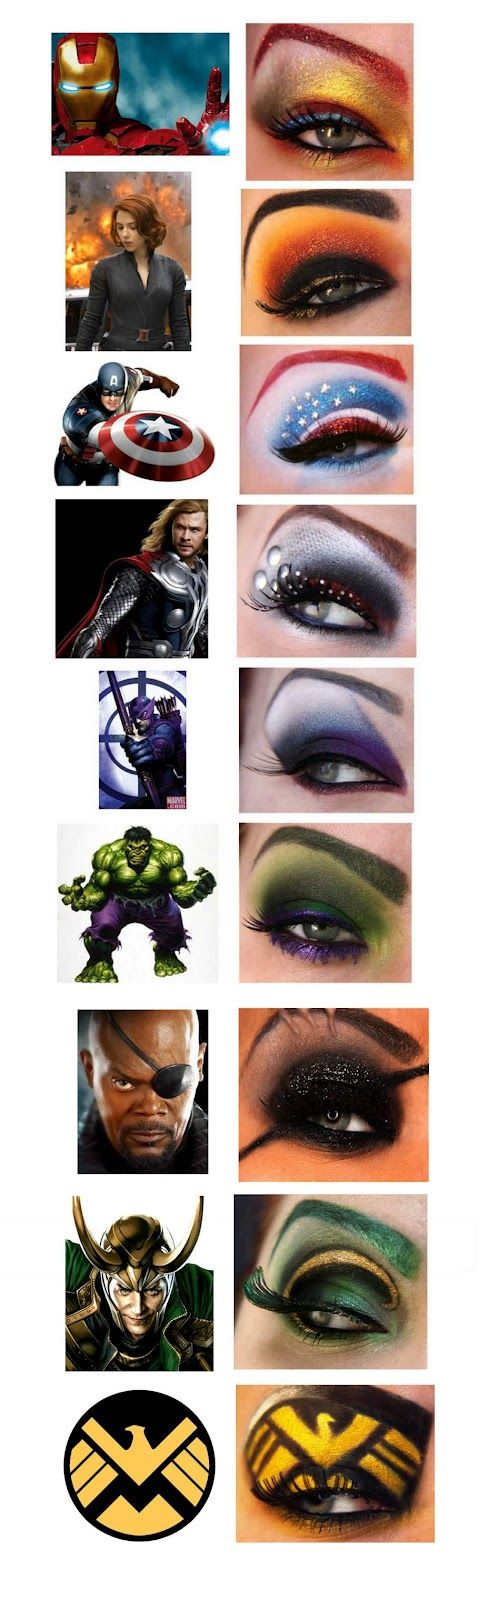 Avengers Eye Makeup Designs